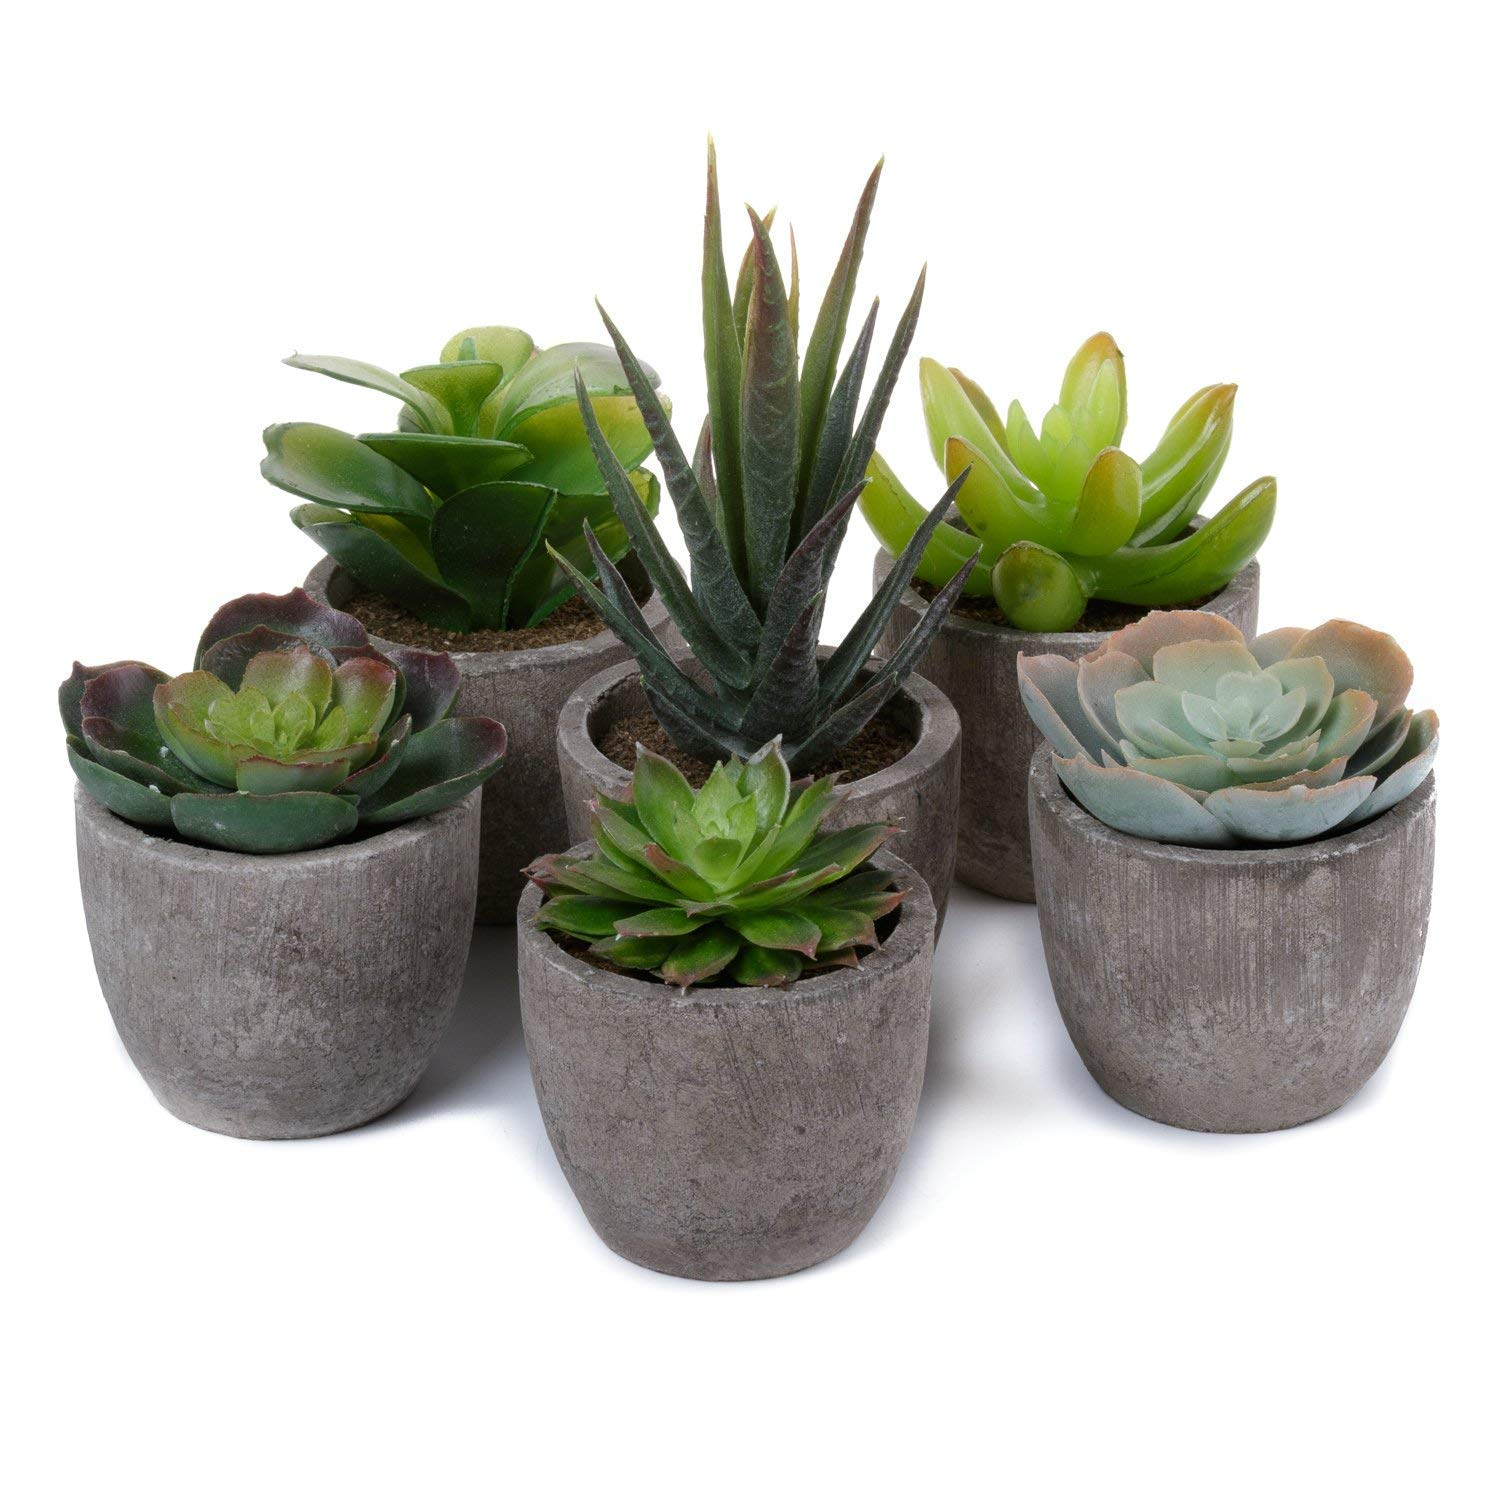 Artificial Succulent Plants Series Plastic Decorative Grass Collection 1 of T4U, Pack of 6